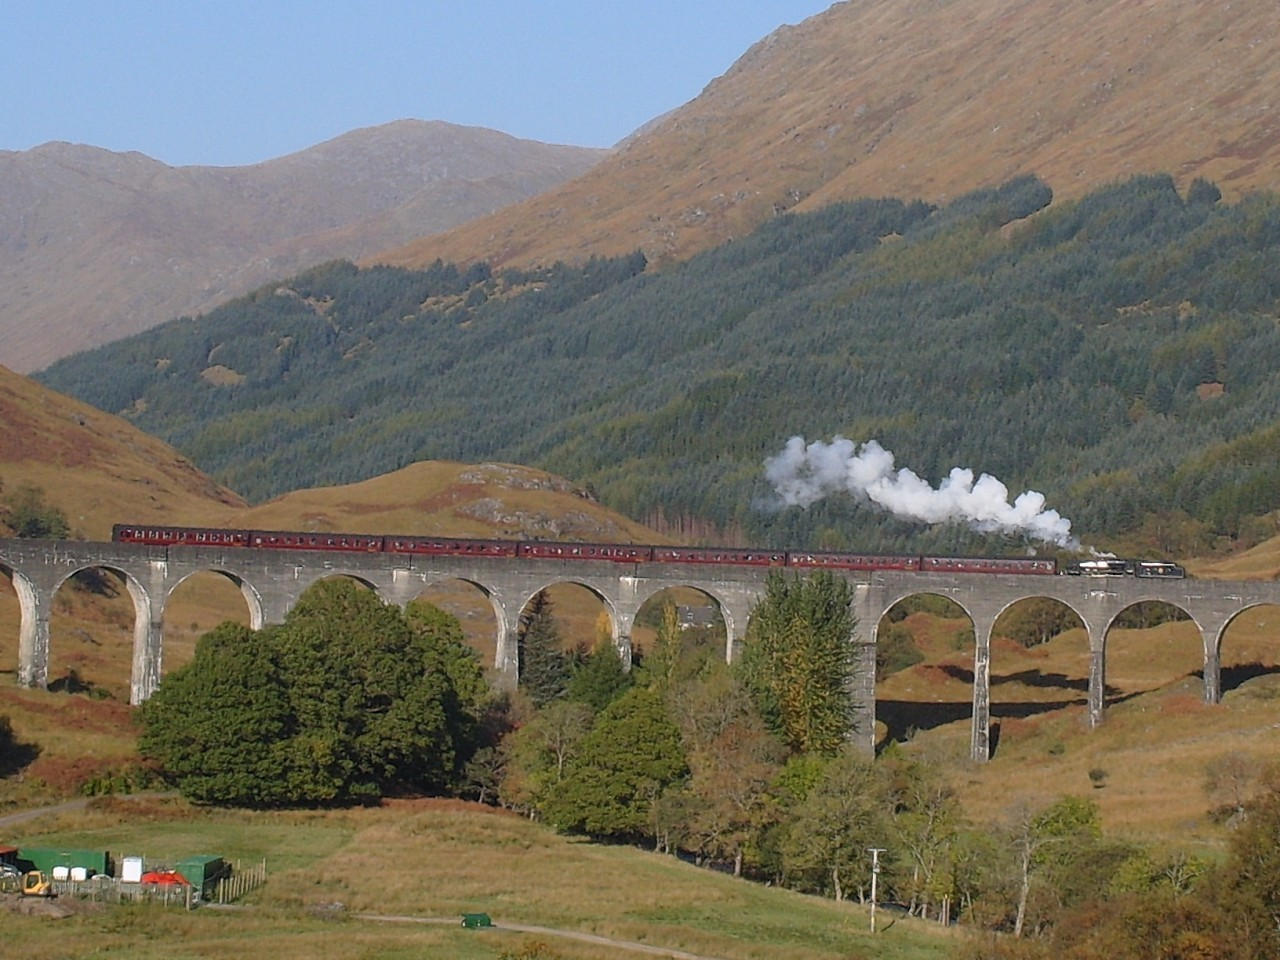 The Glenfinnan Viaduct, made famous in the Harry Potter films, is part of the West Highland Line